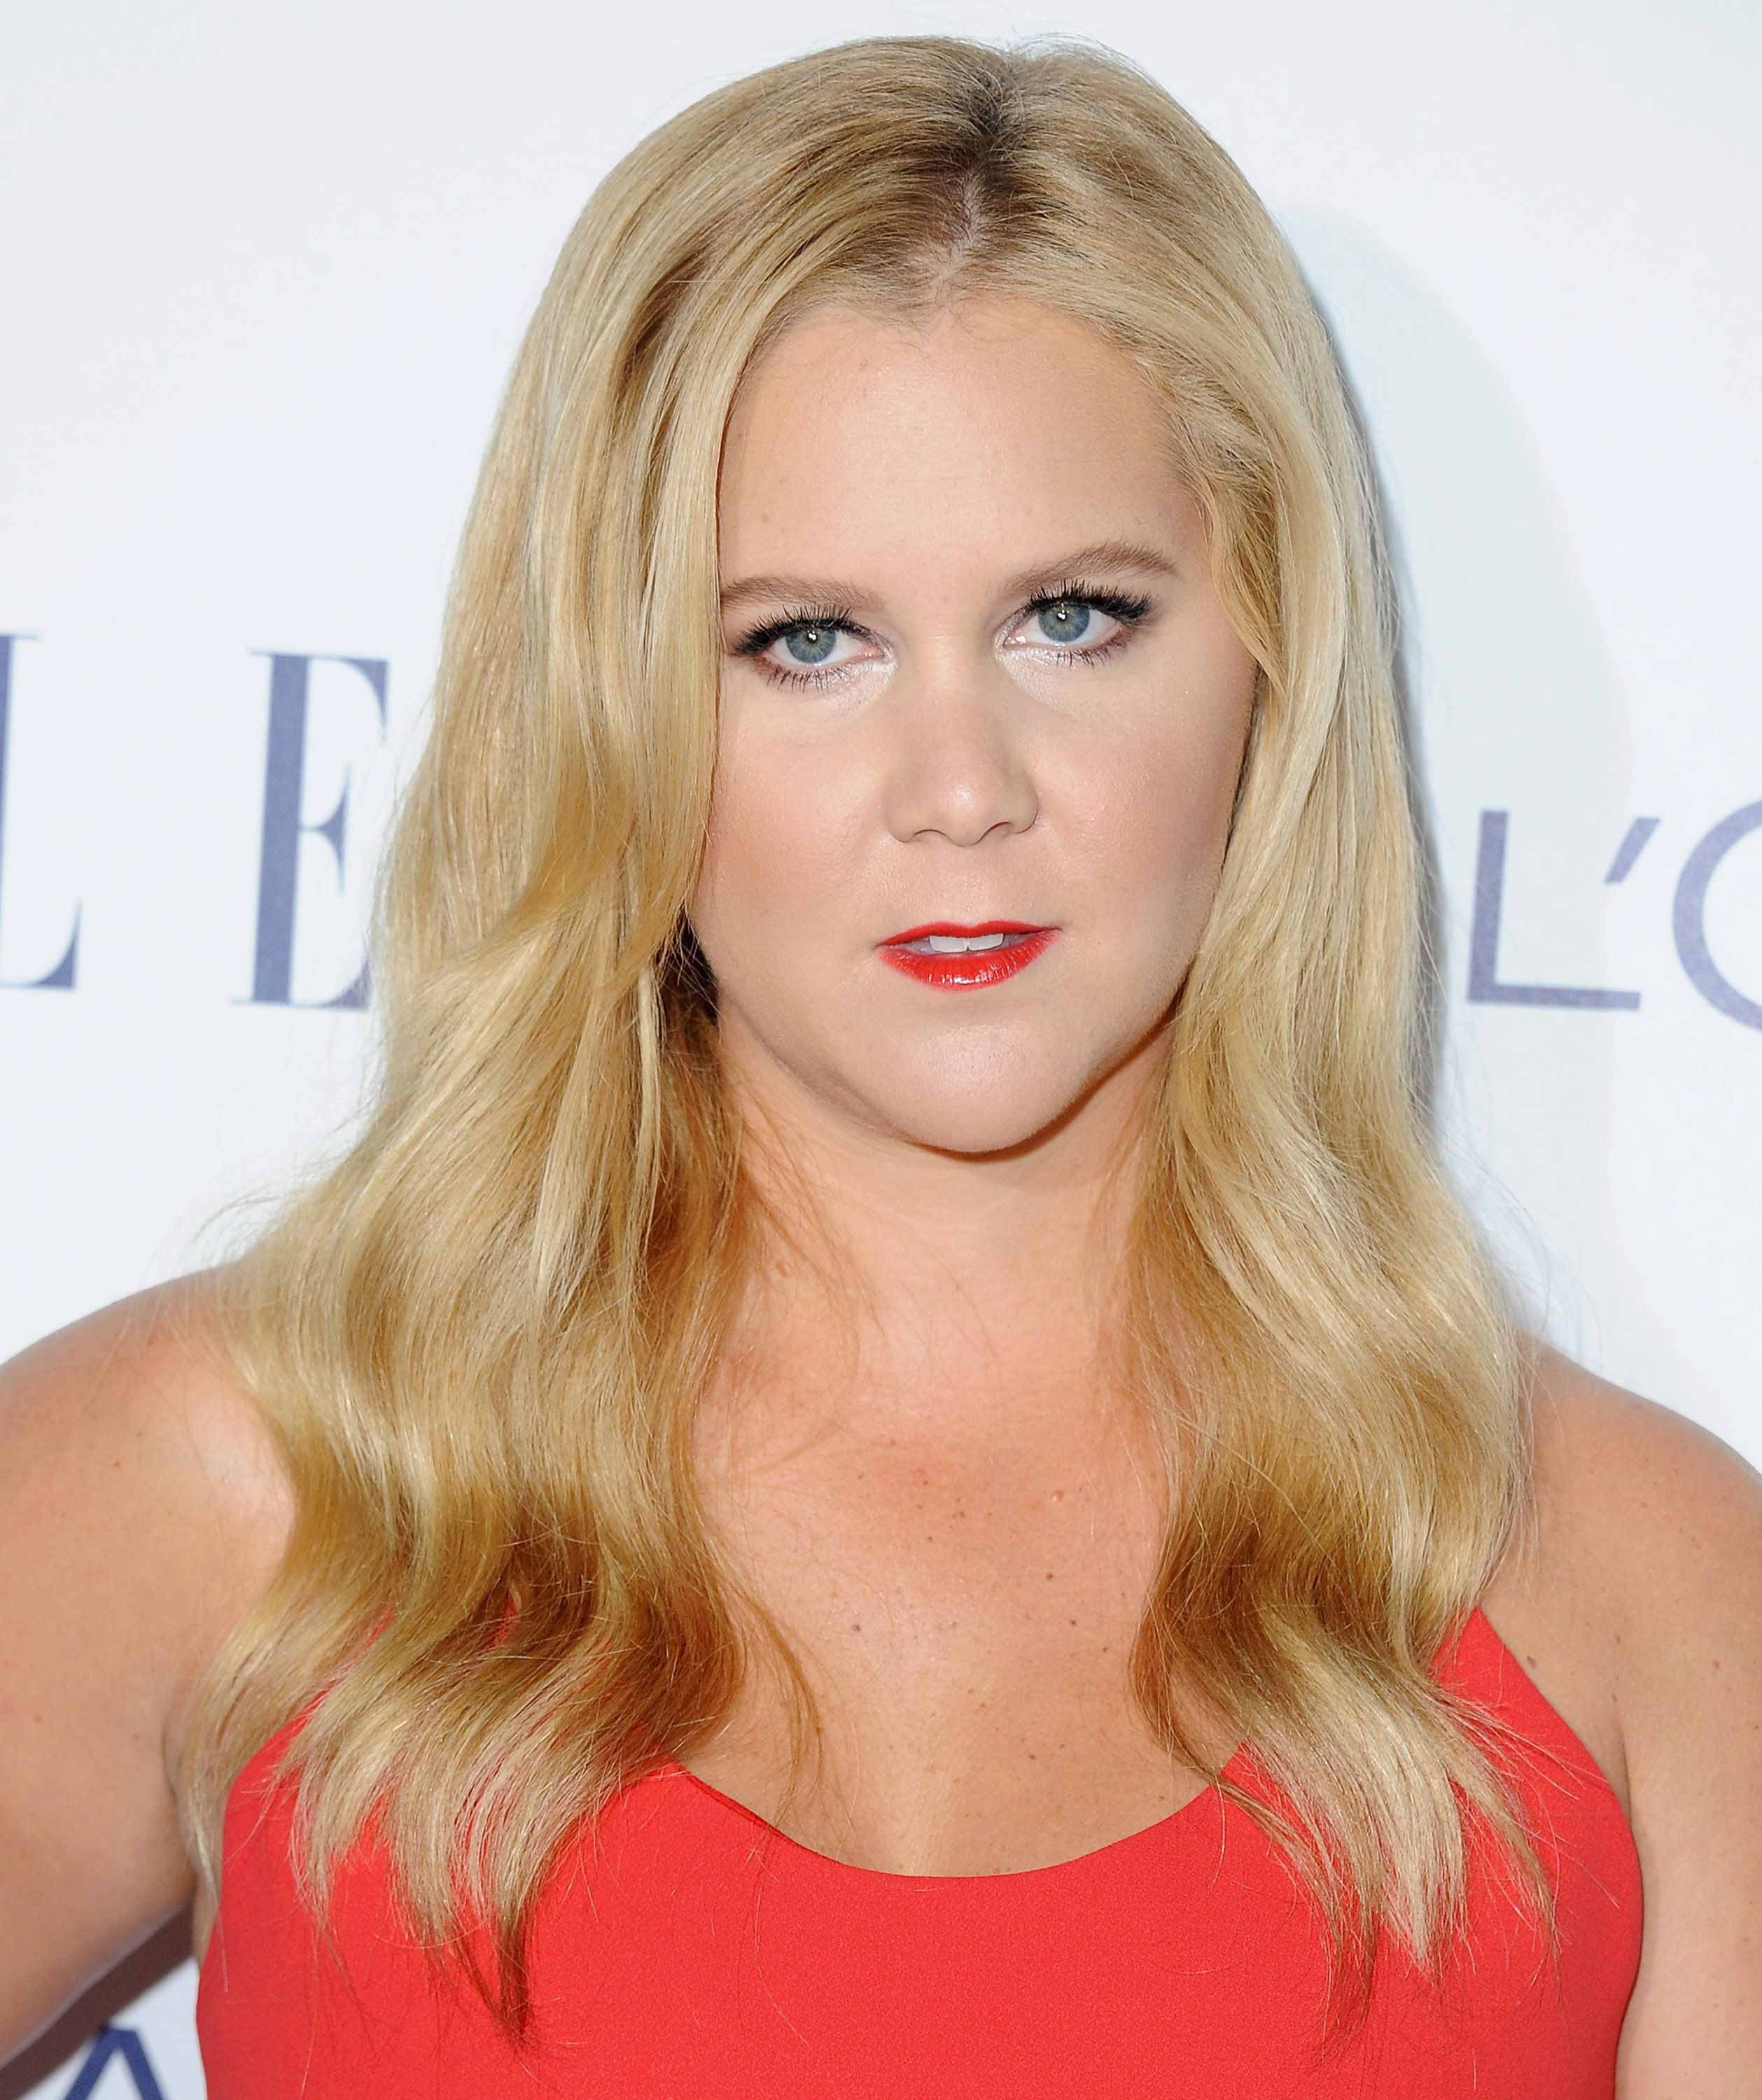 LOS ANGELES, CA - OCTOBER 19:  Actress Amy Schumer arrives at the 22nd Annual ELLE Women In Hollywood Awards at Four Seasons Hotel Los Angeles at Beverly Hills on October 19, 2015 in Los Angeles, California.  (Photo by Jon Kopaloff/FilmMagic)